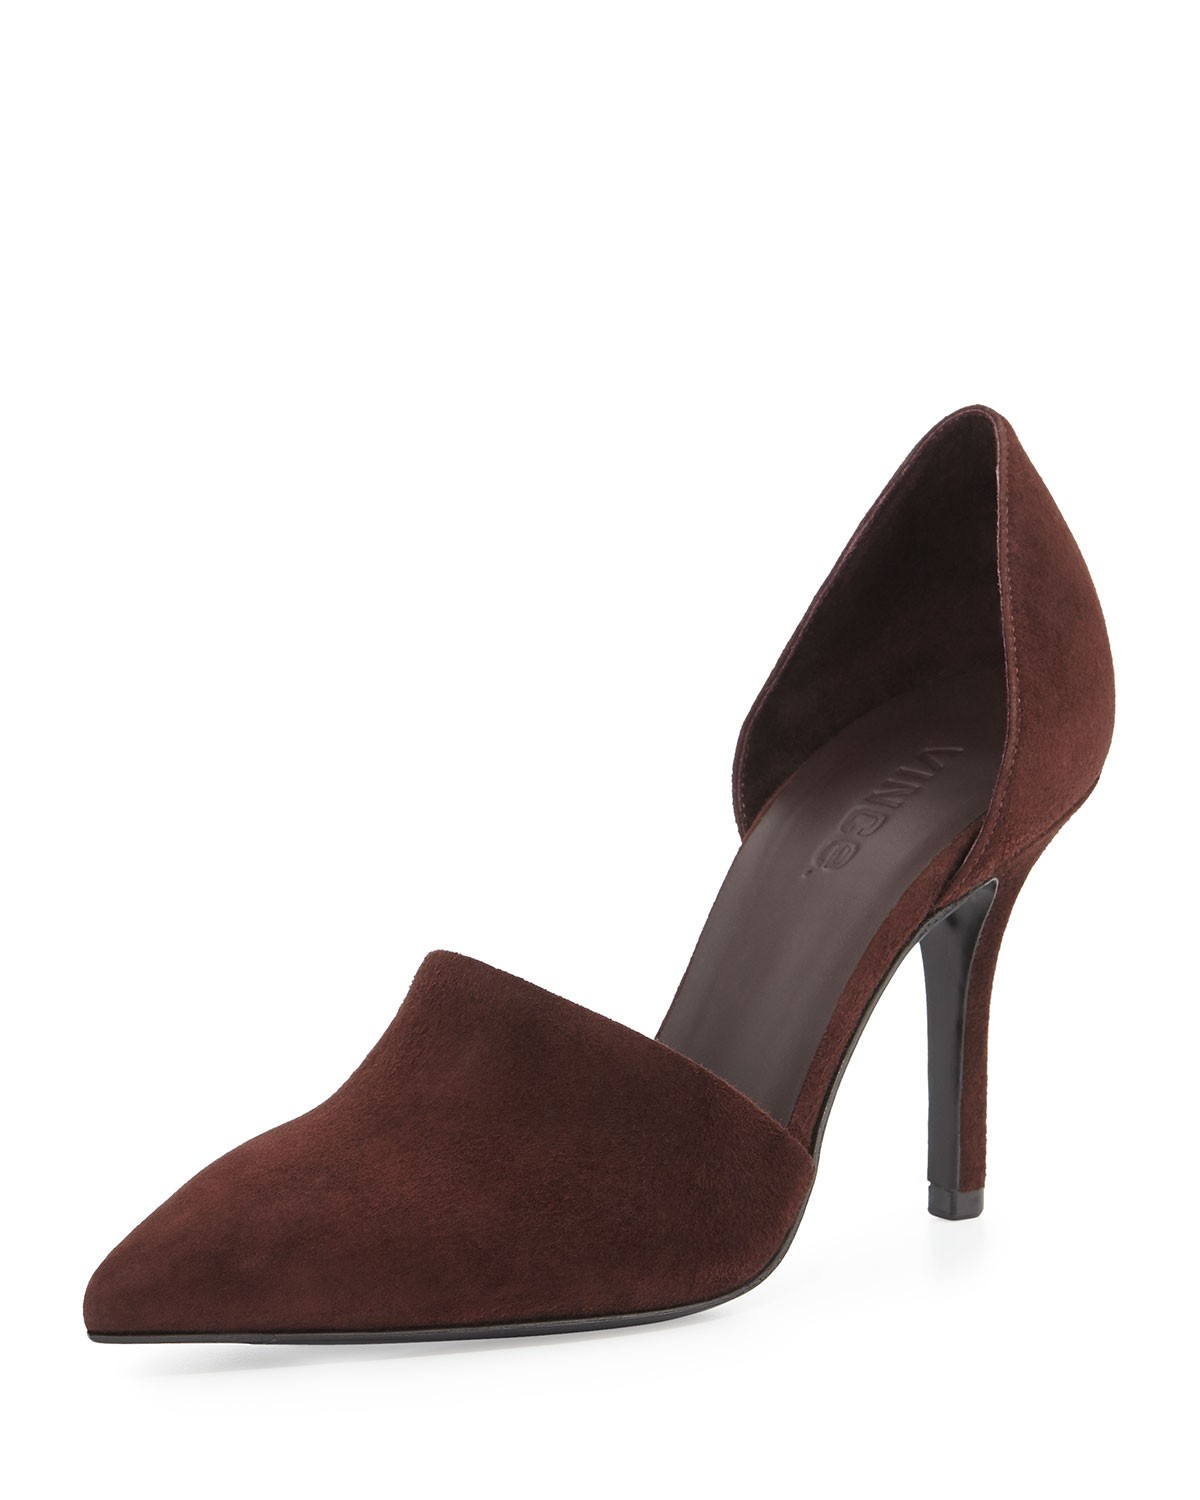 Claire Two-Piece Suede Pump, Black Cherry - Vince - Black cherry (35.0B/5.0B)